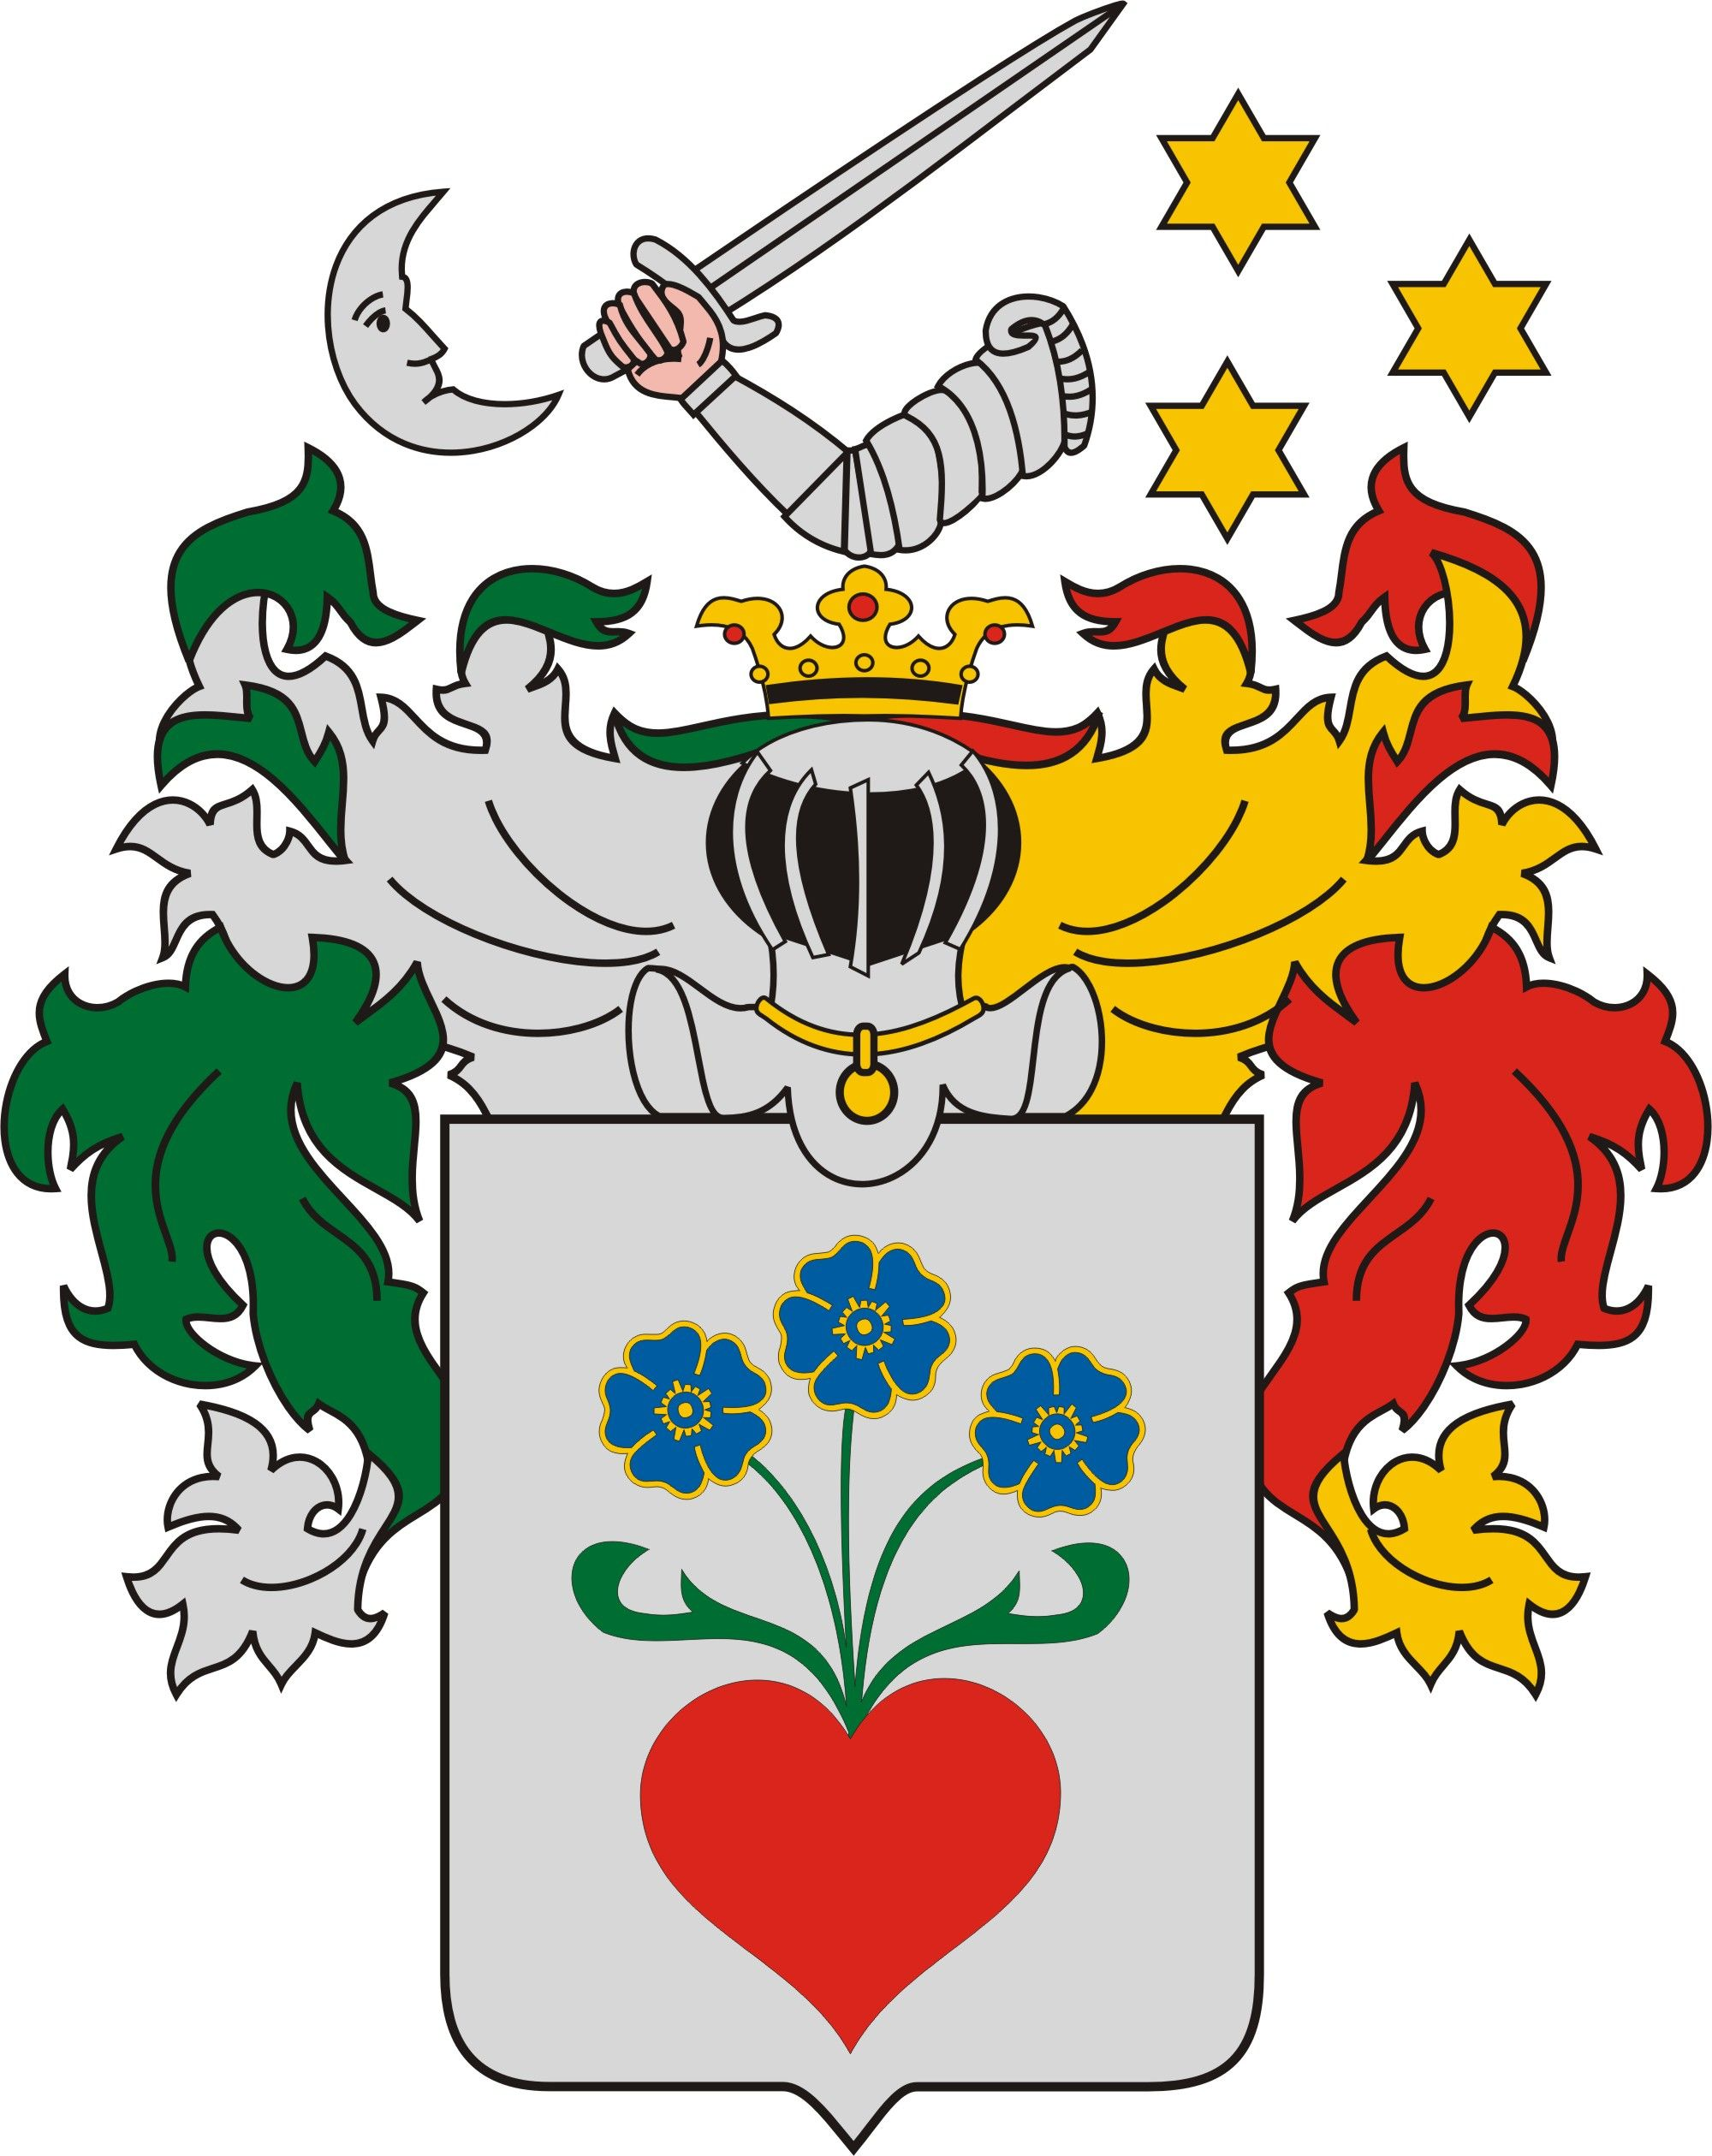 coat_of_arms_sumeg_cimere.jpg